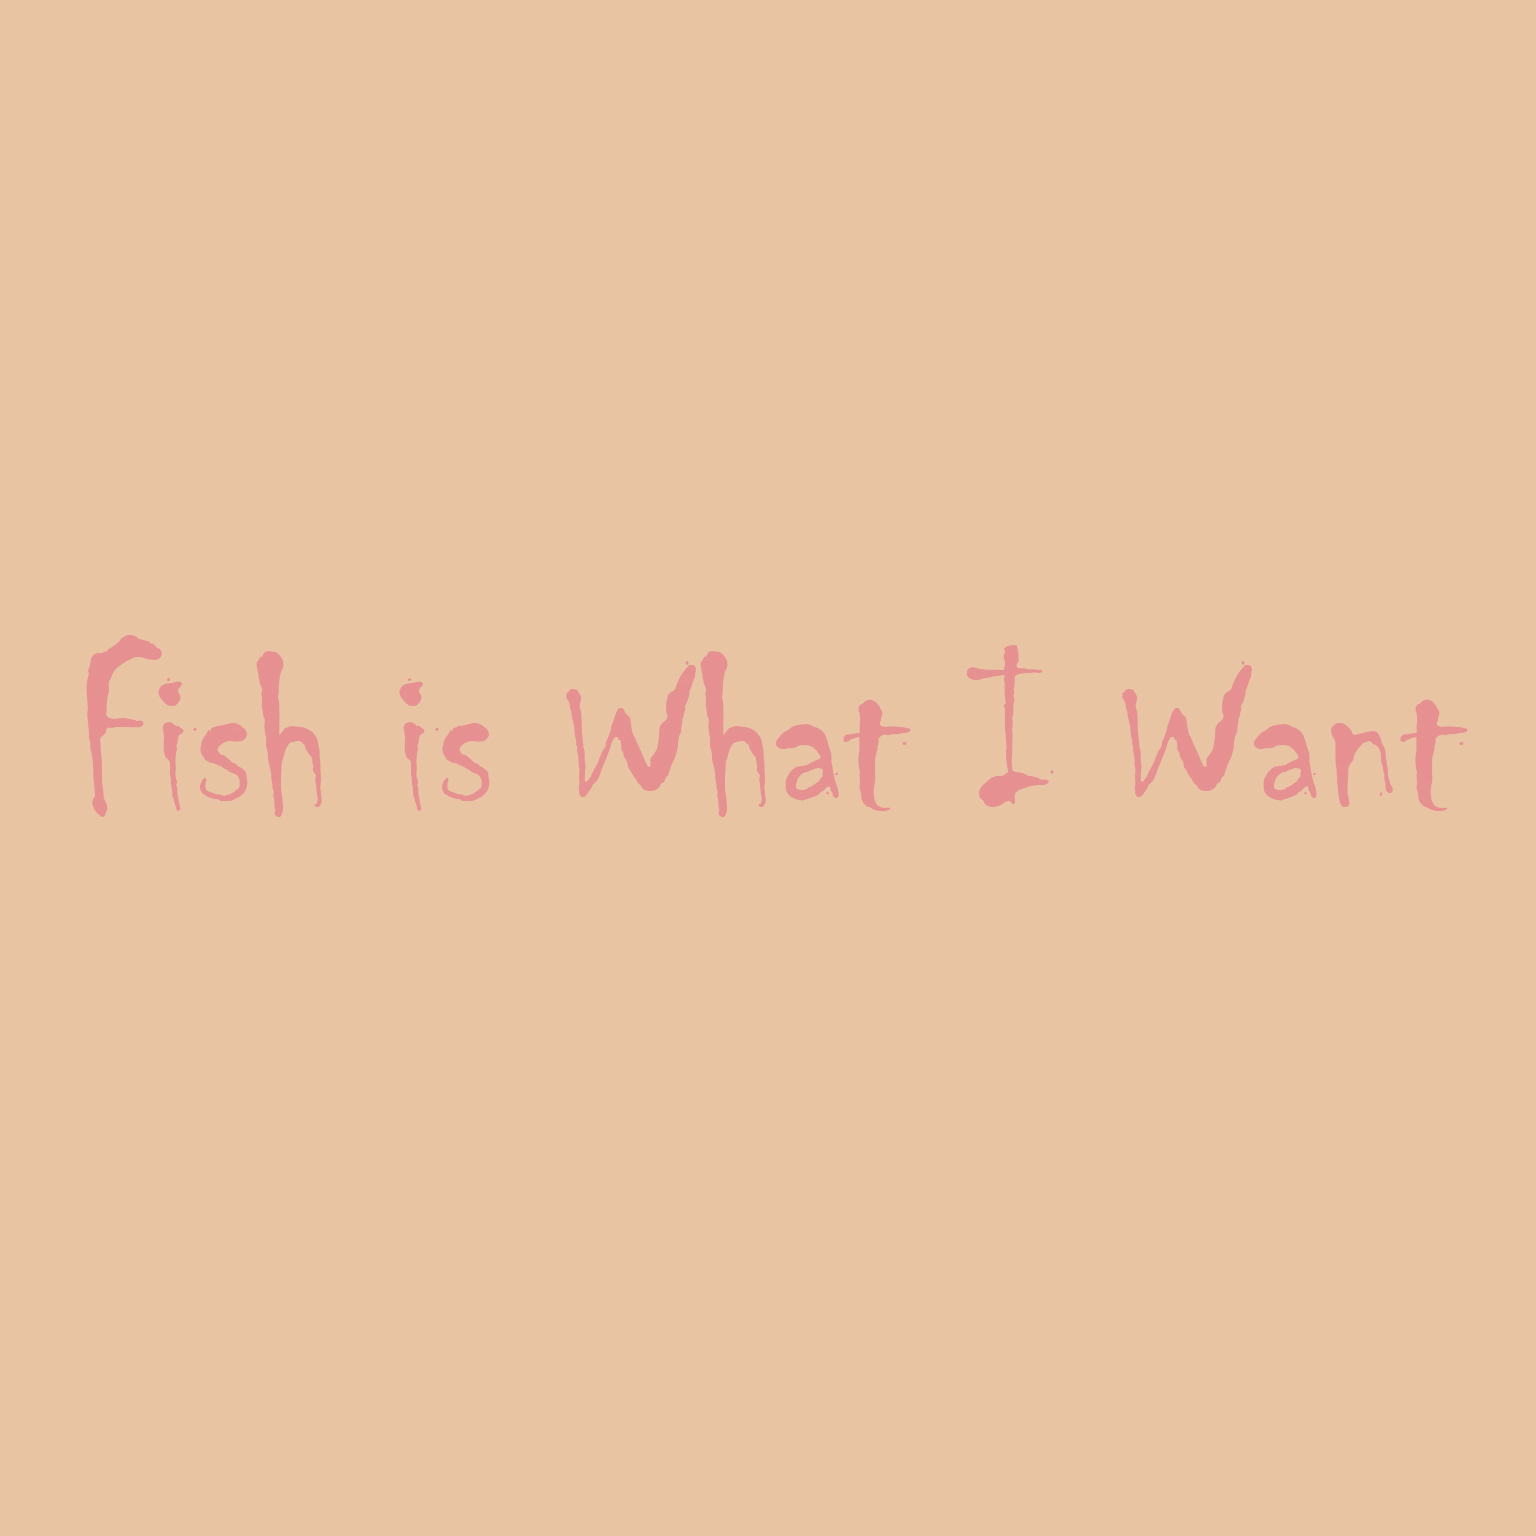 Fish is What I Want